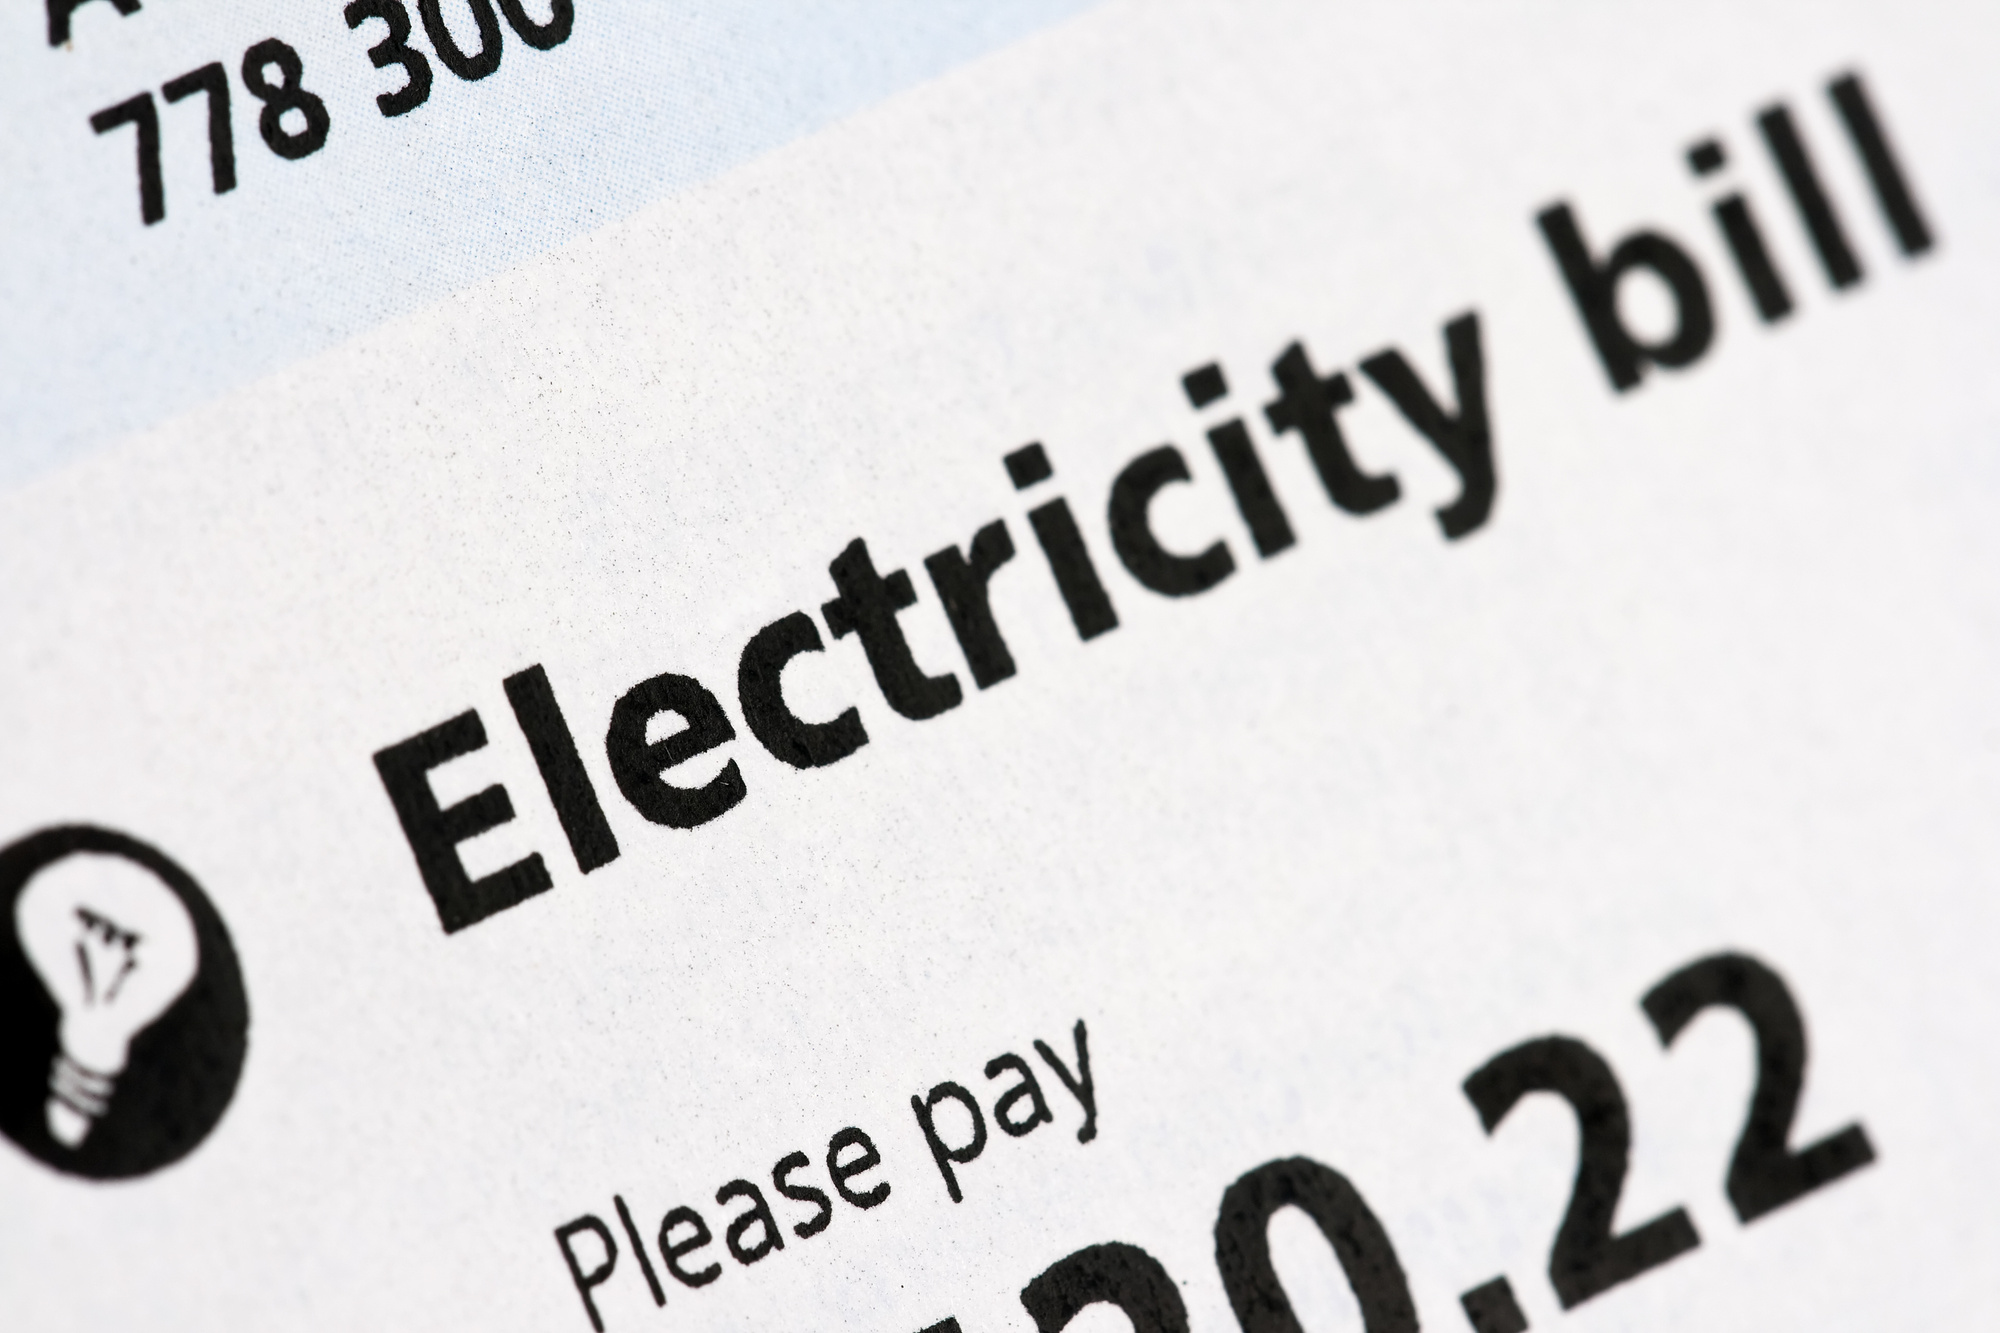 Energy Management: How to Use Less Electricity at Work